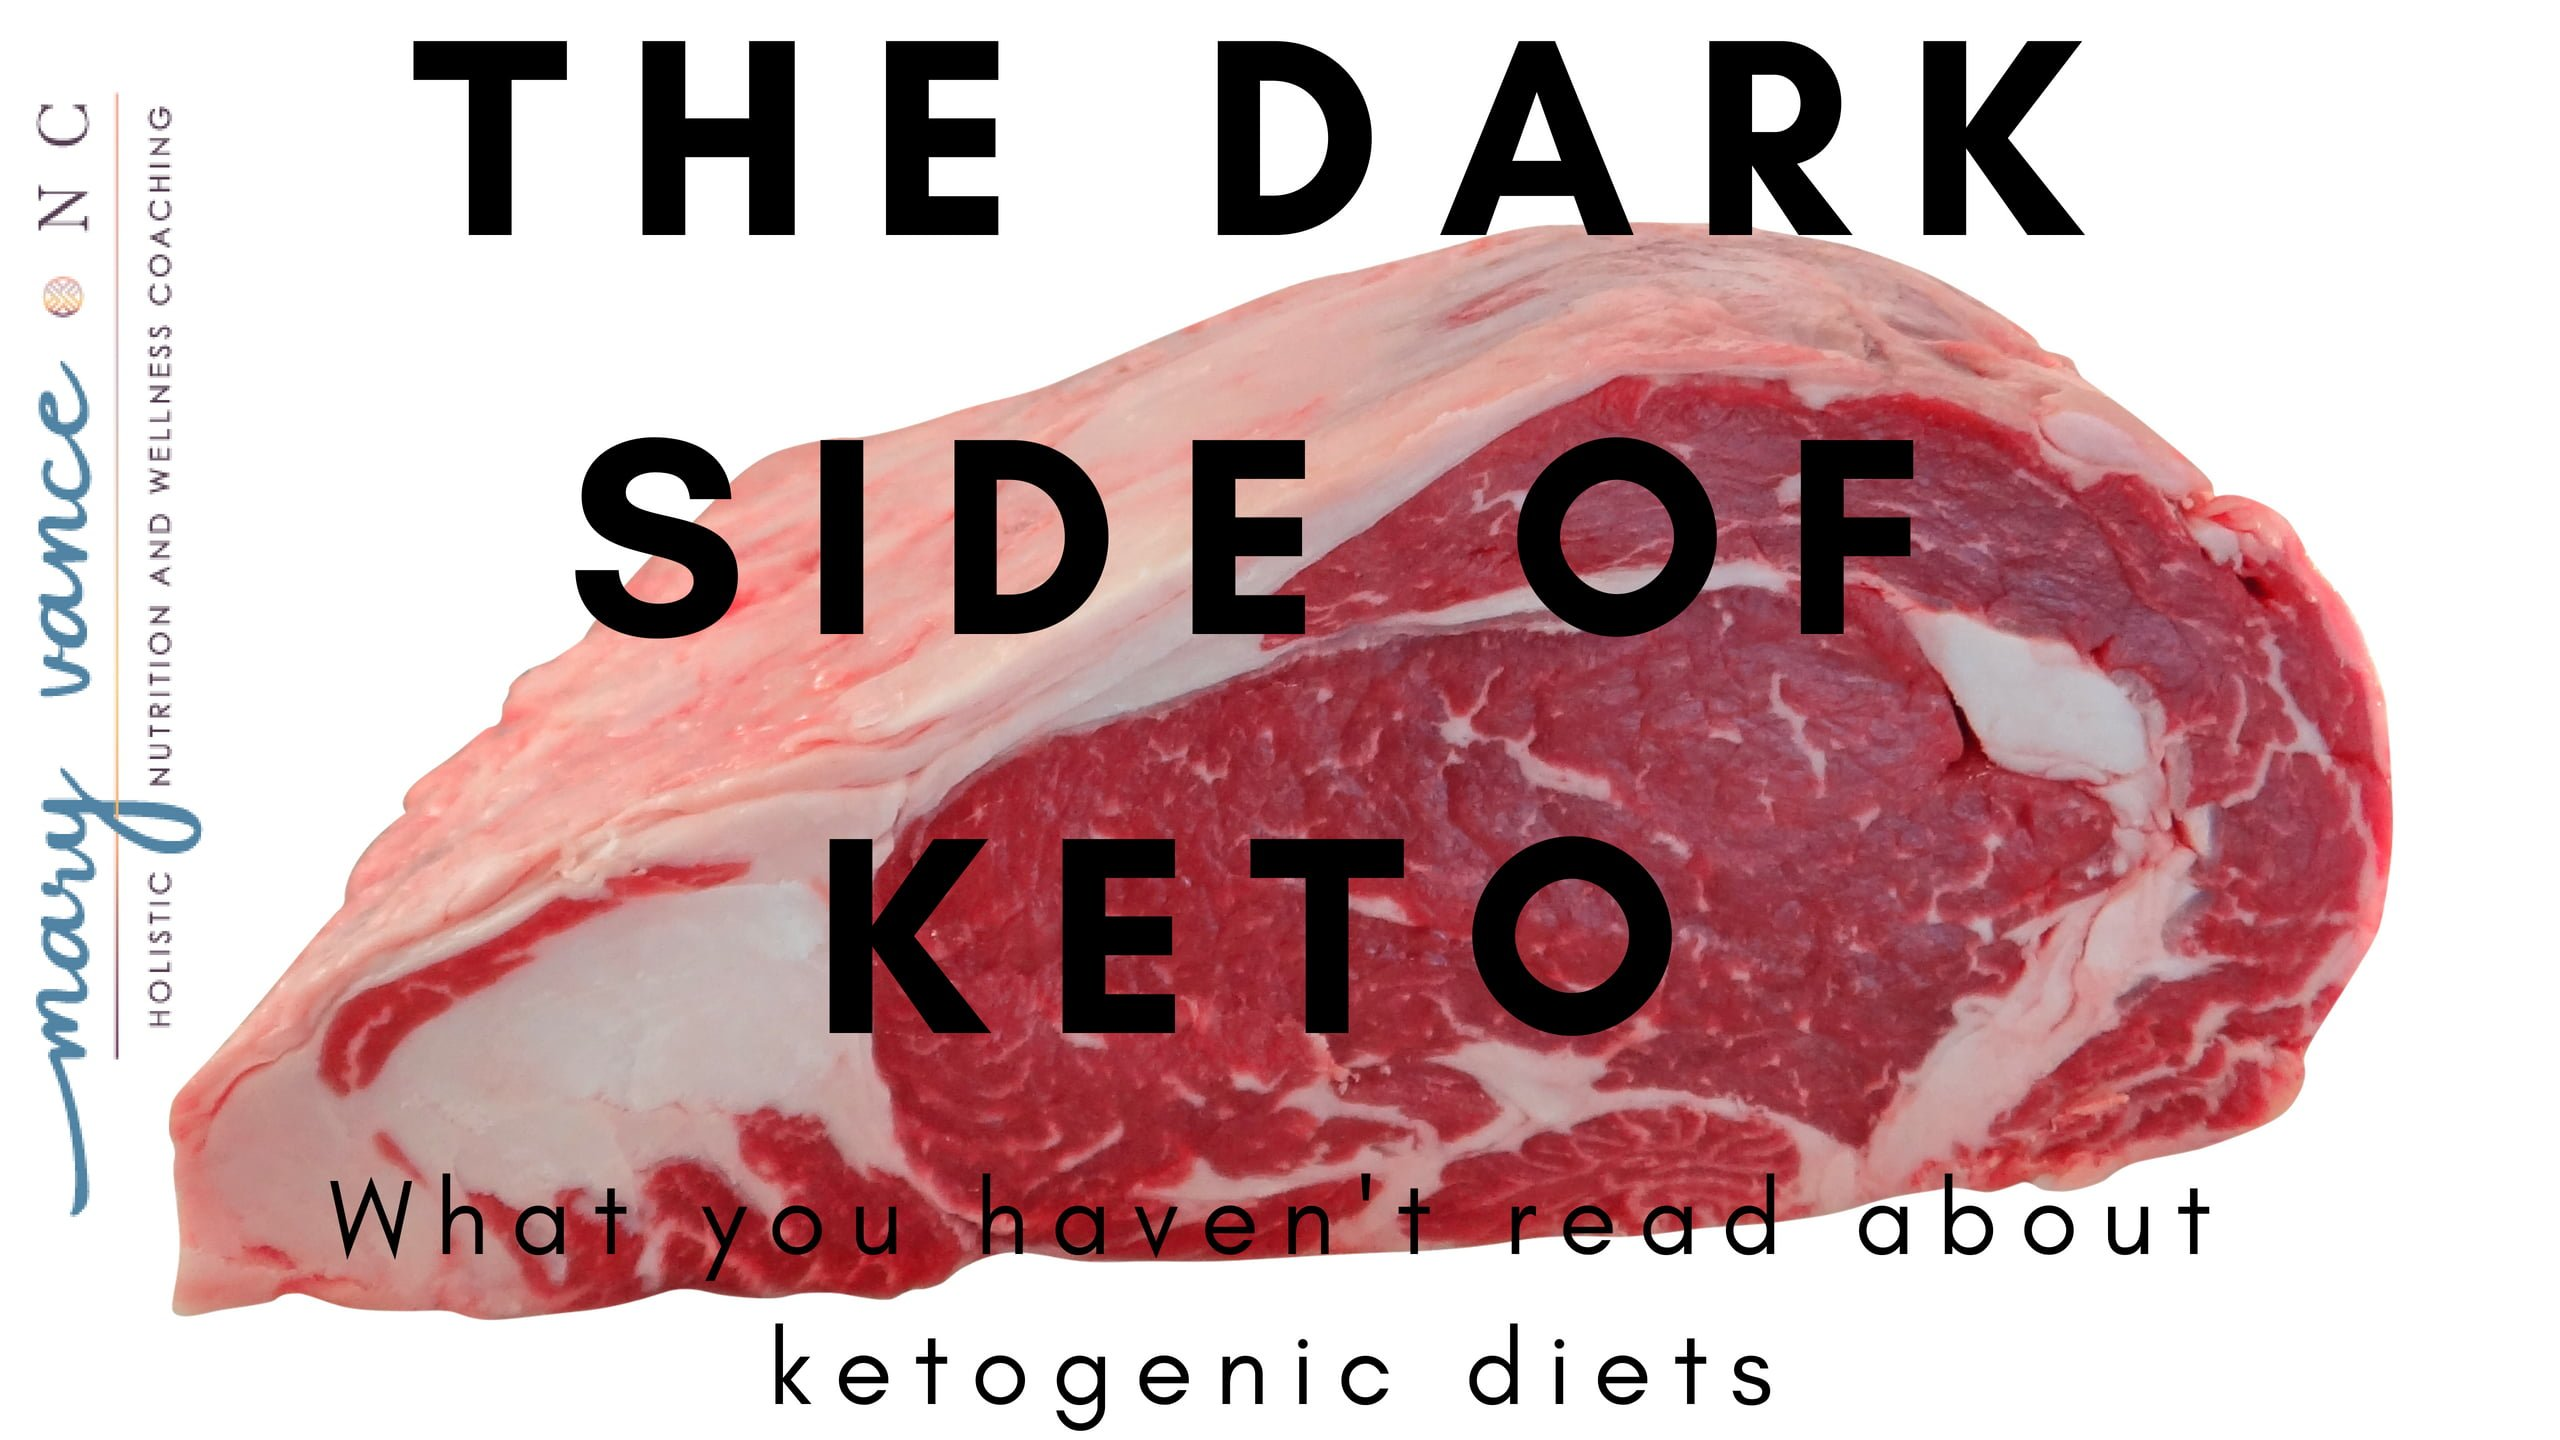 The Dark Side of Keto - Mary Vance, NC